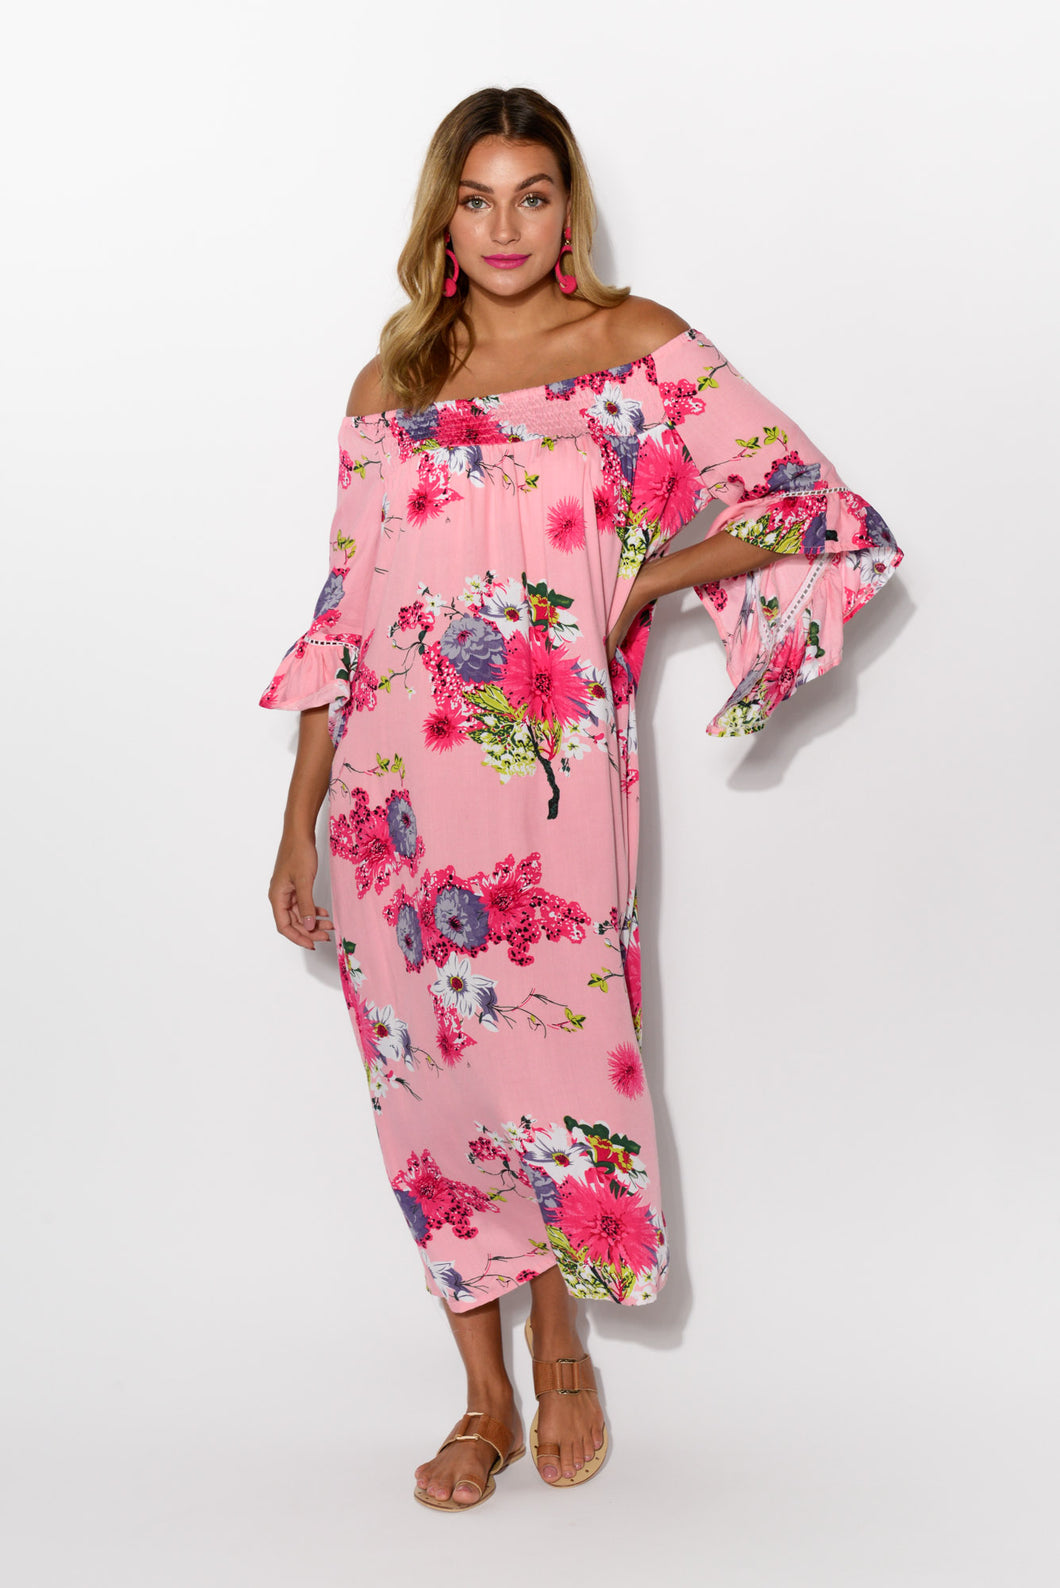 Amanda Blush Sakura Maxi Dress - Blue Bungalow